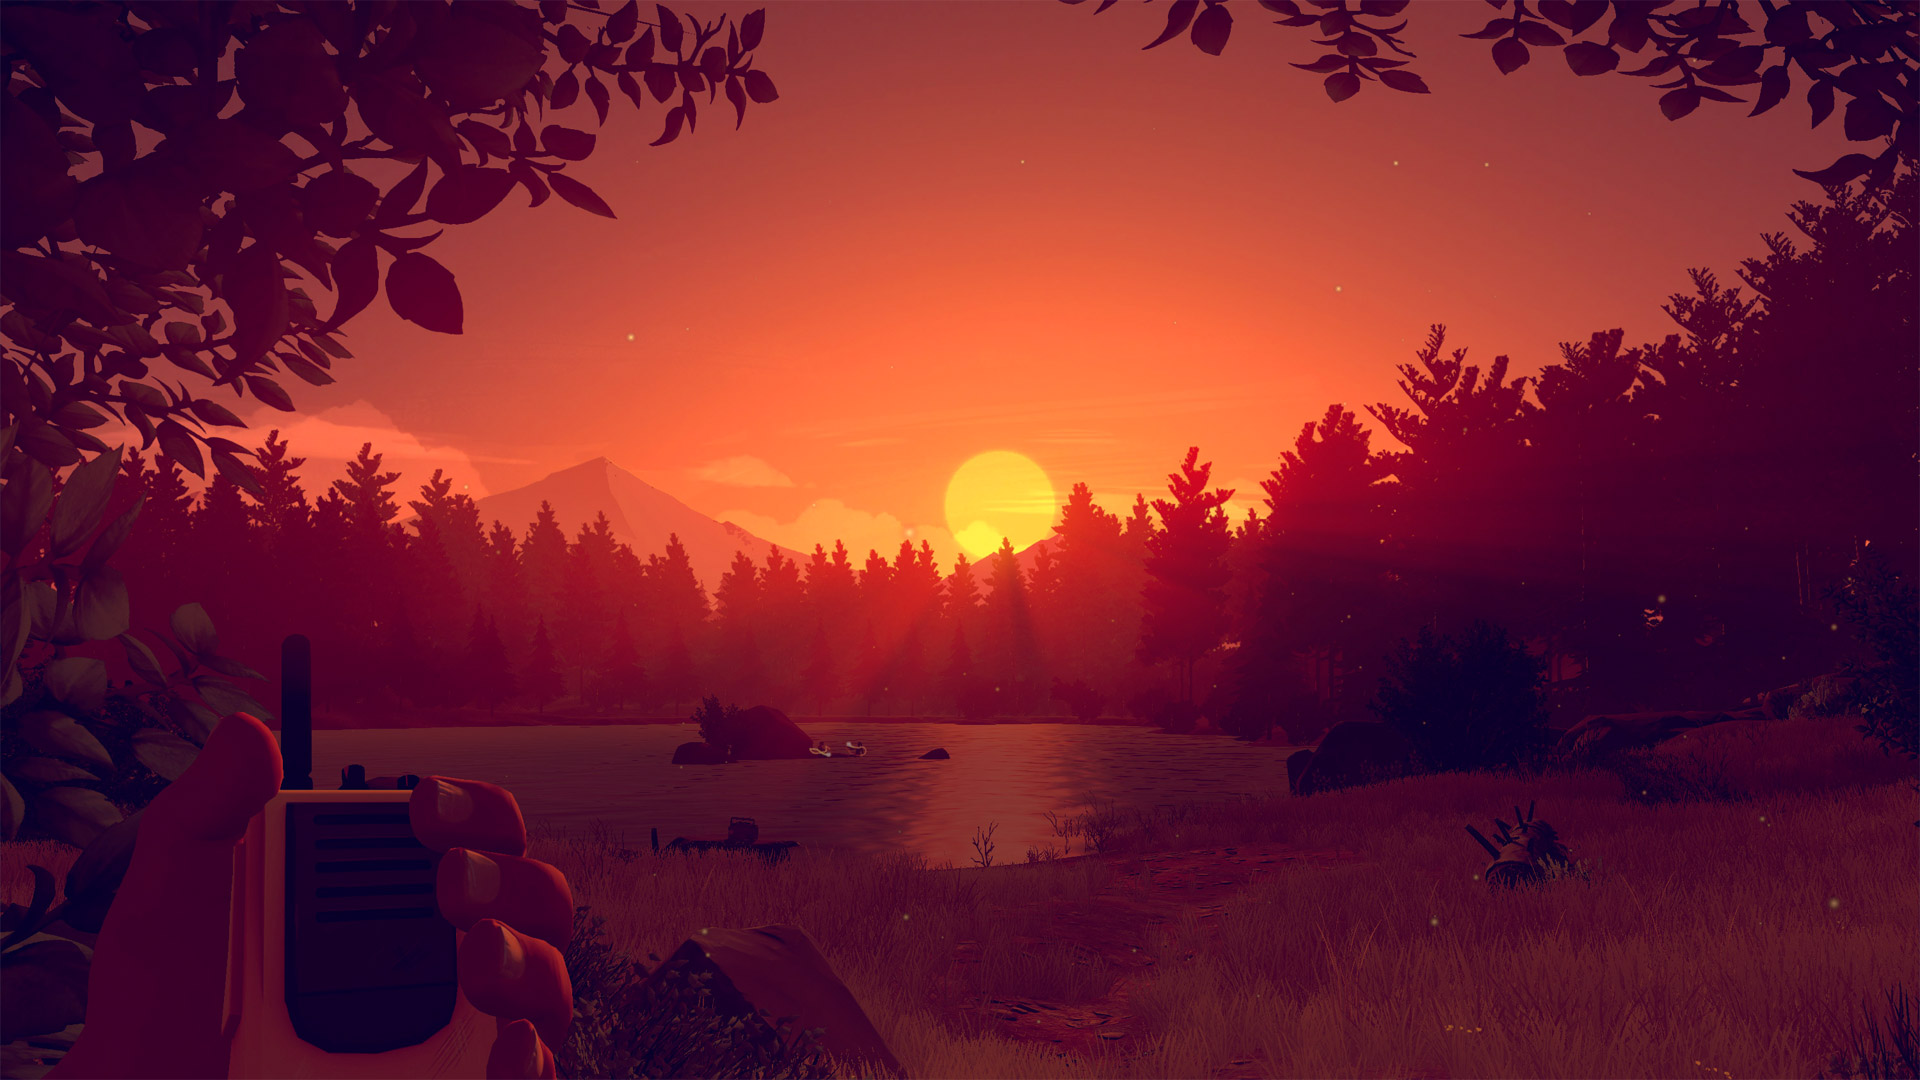 Firewatch coming to PC and PS4 next February